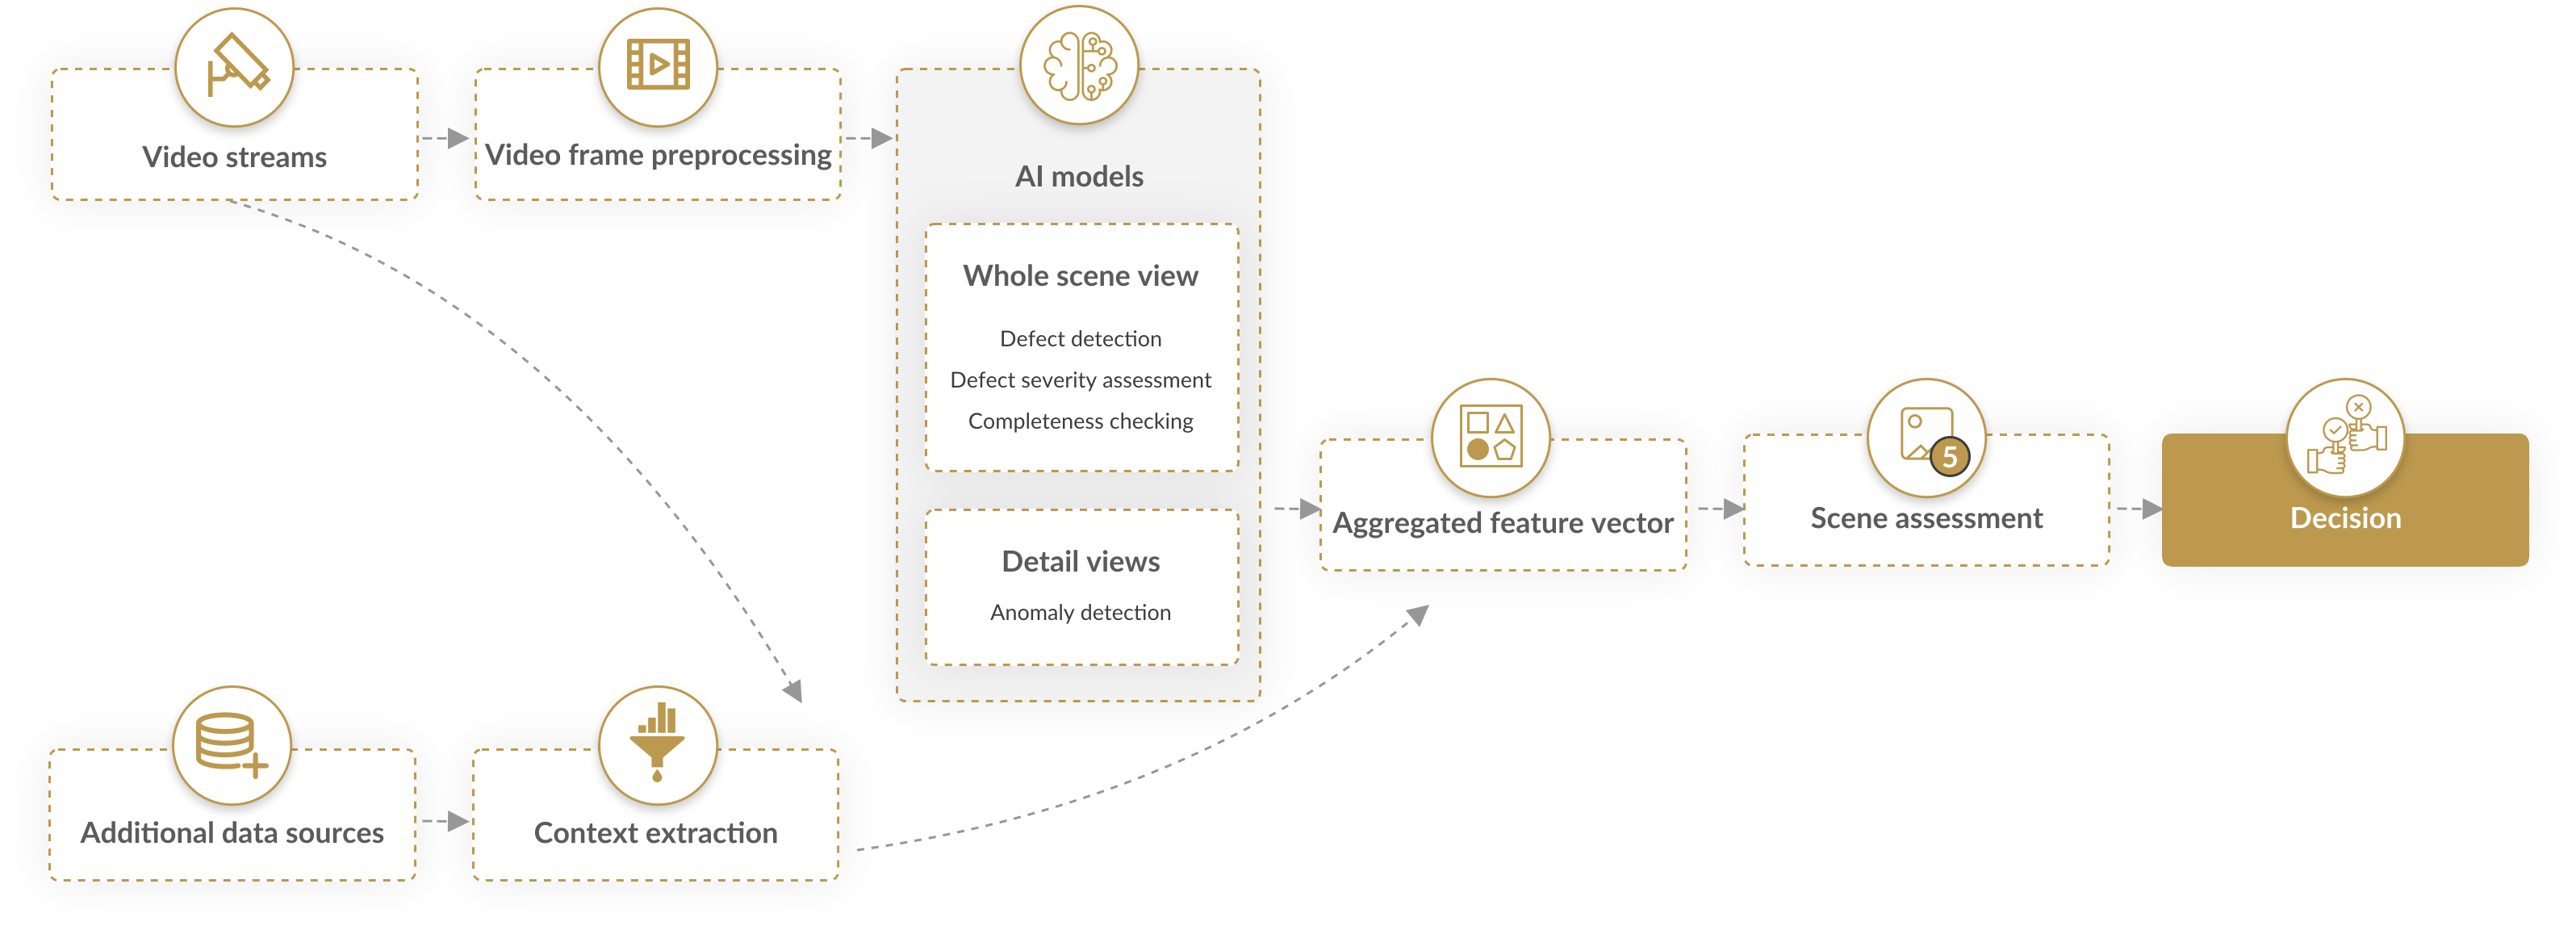 A modular architecture of state-of-the-art AI models